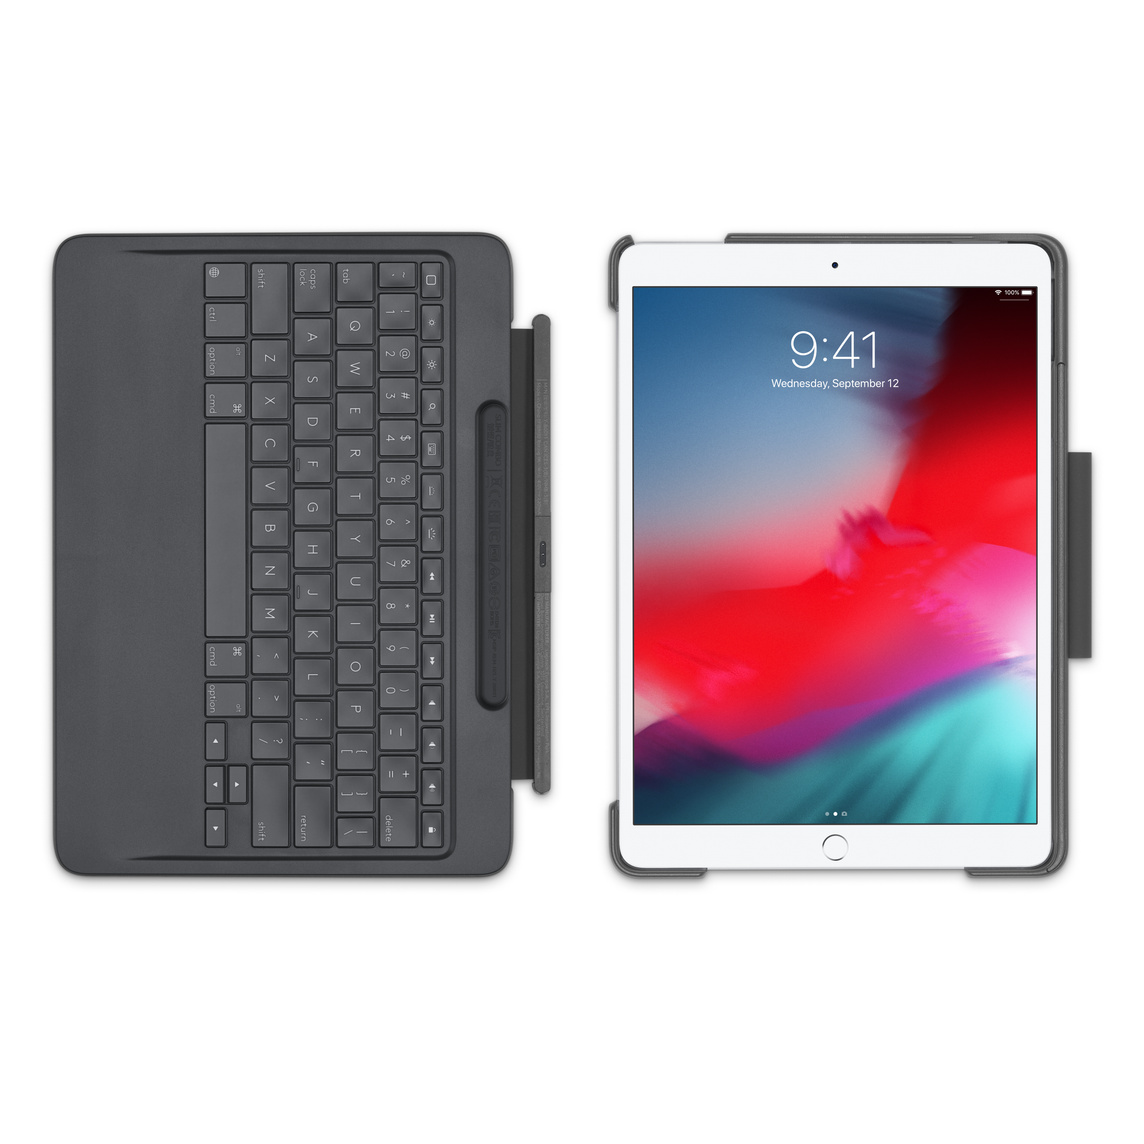 buy popular e3944 8c299 Logitech Slim Combo with detachable keyboard for 10.5-inch iPad Air and  iPad Pro - Black